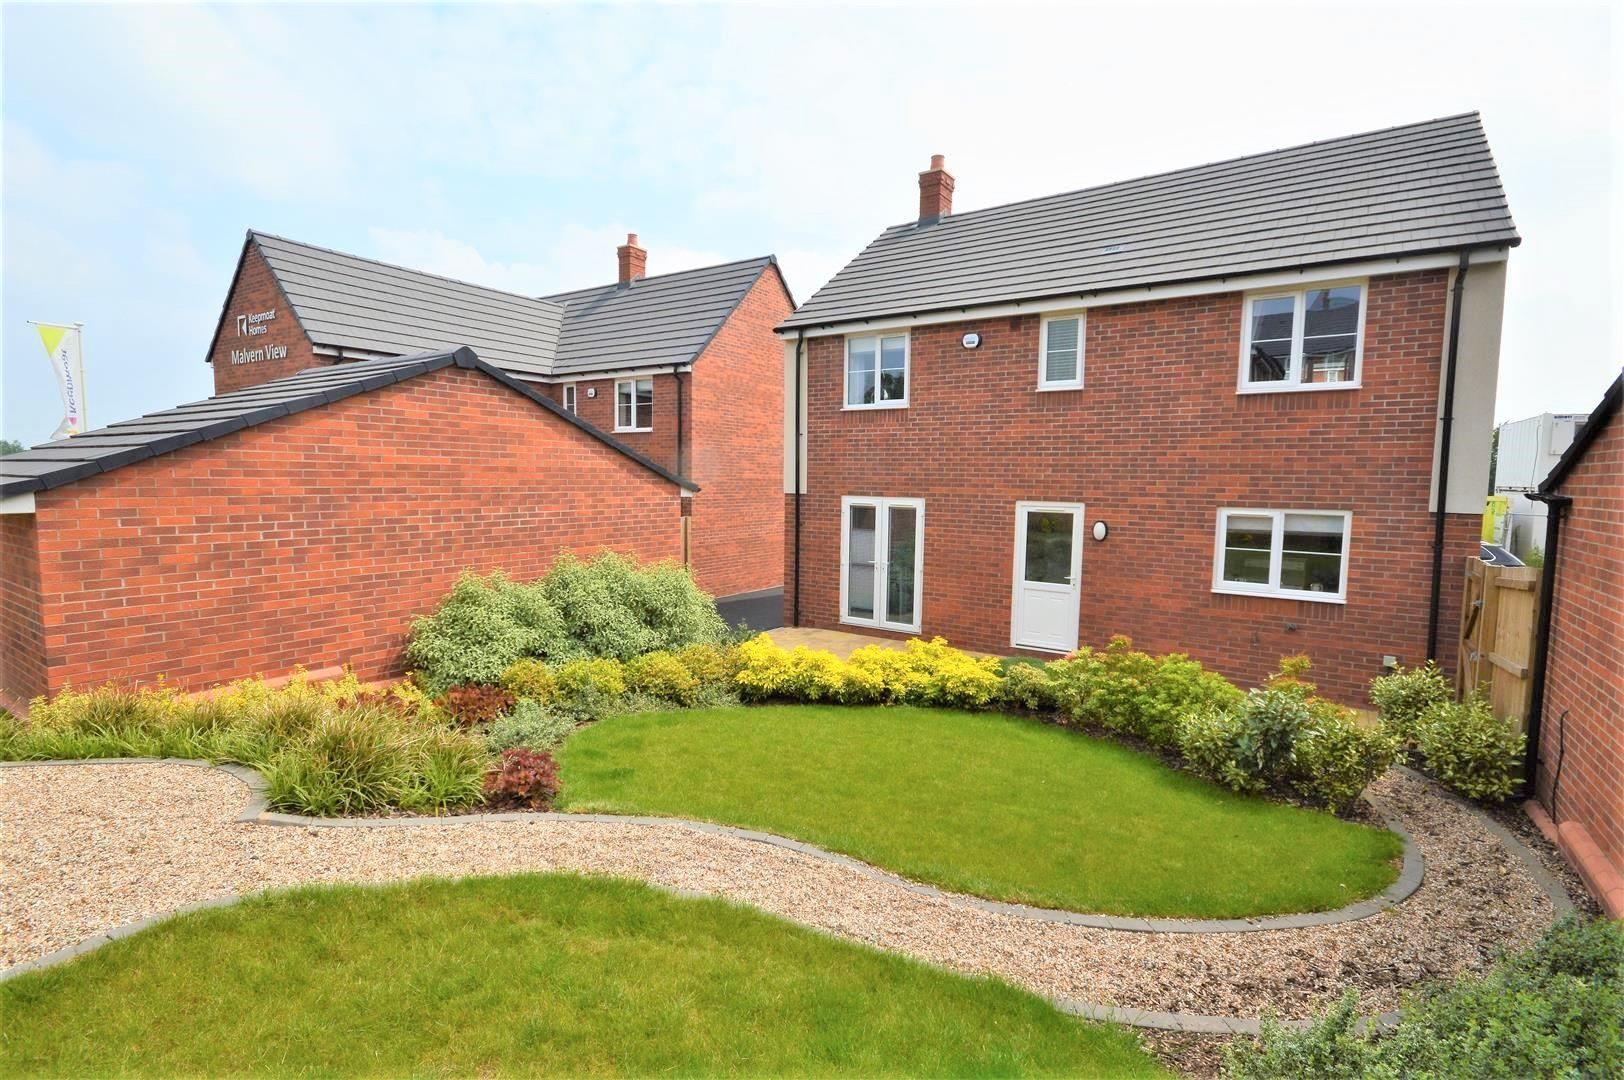 4 bed detached for sale in Bartestree 18